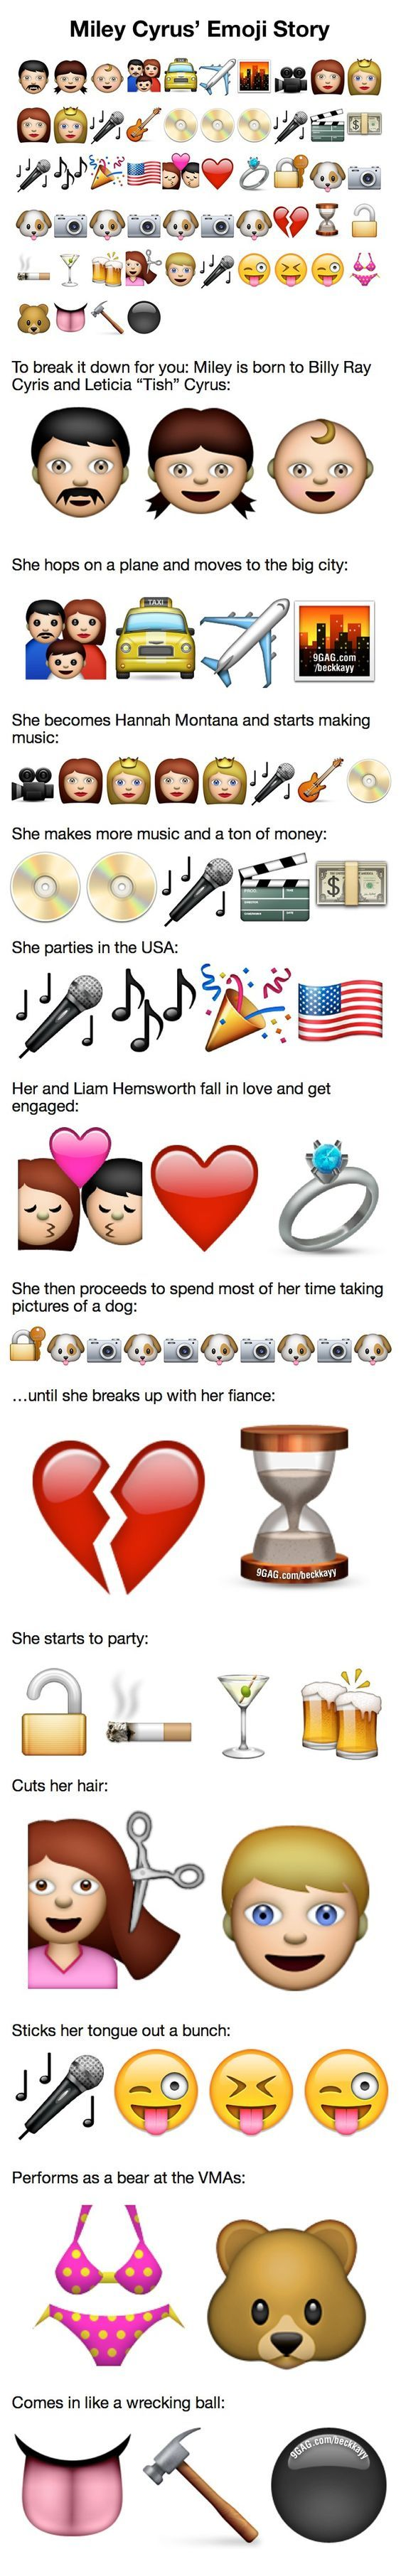 Miley Cyrus' Emoji Story!!! So true: